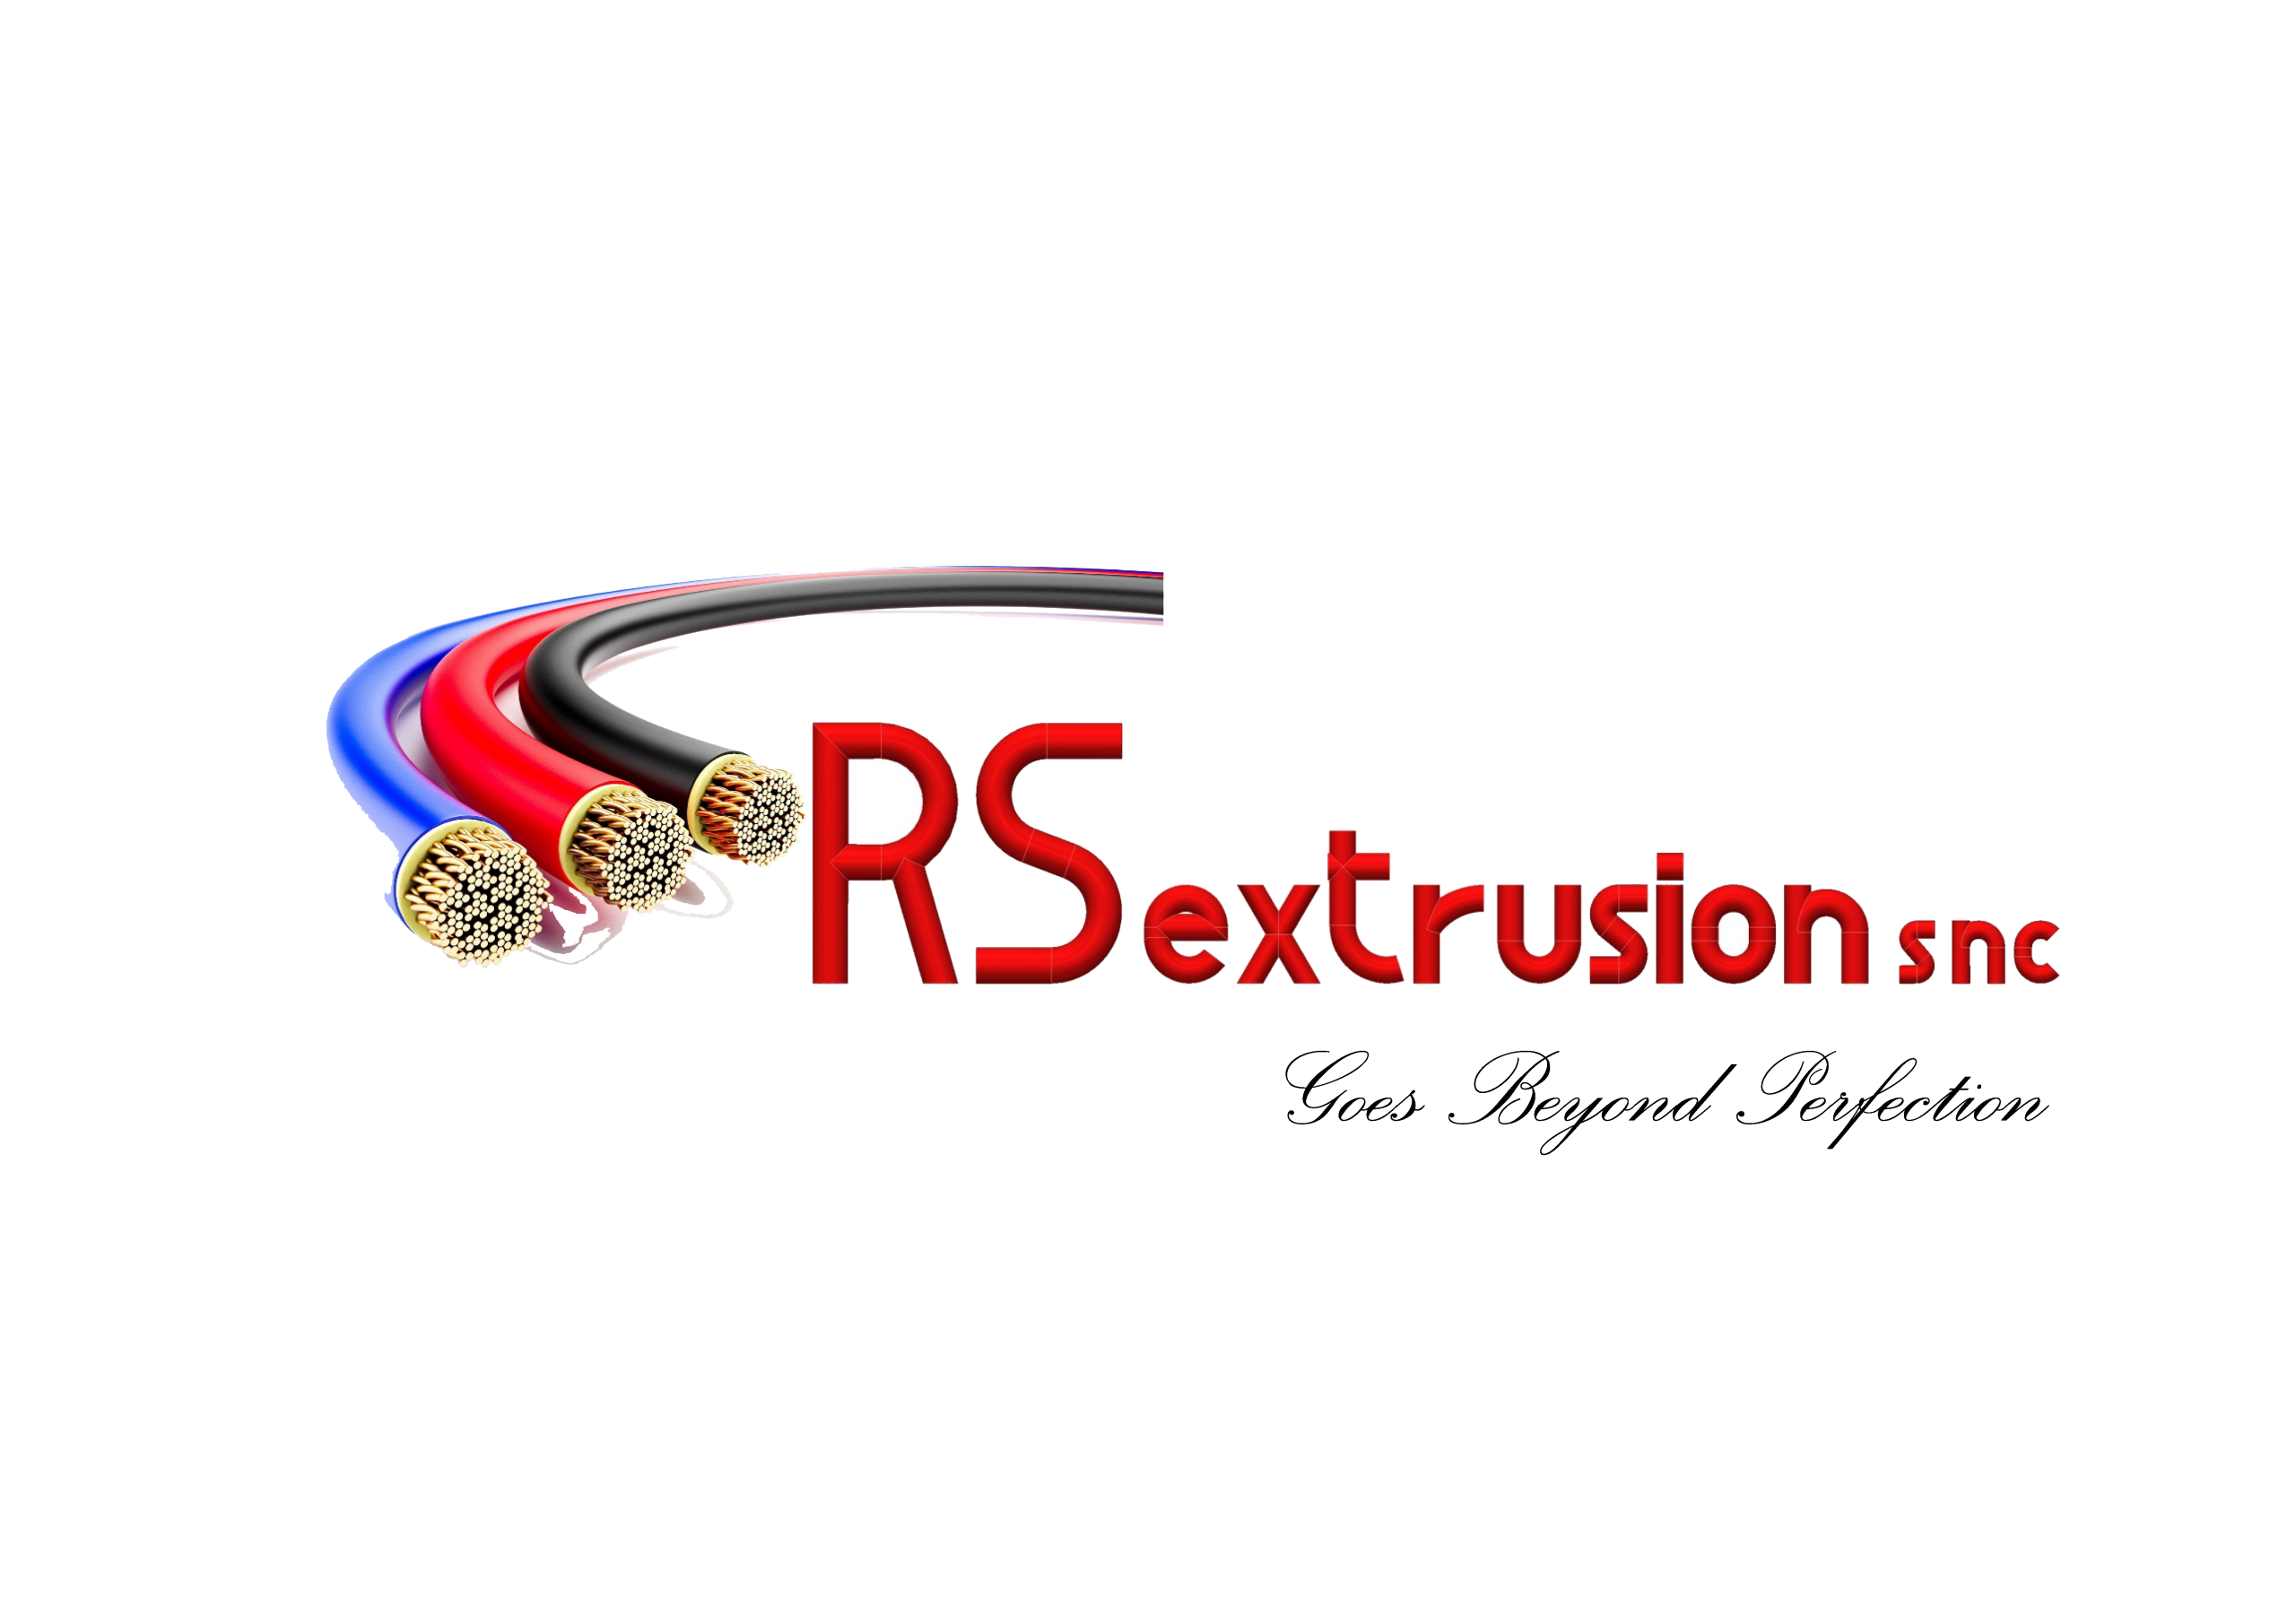 Rsextrusion